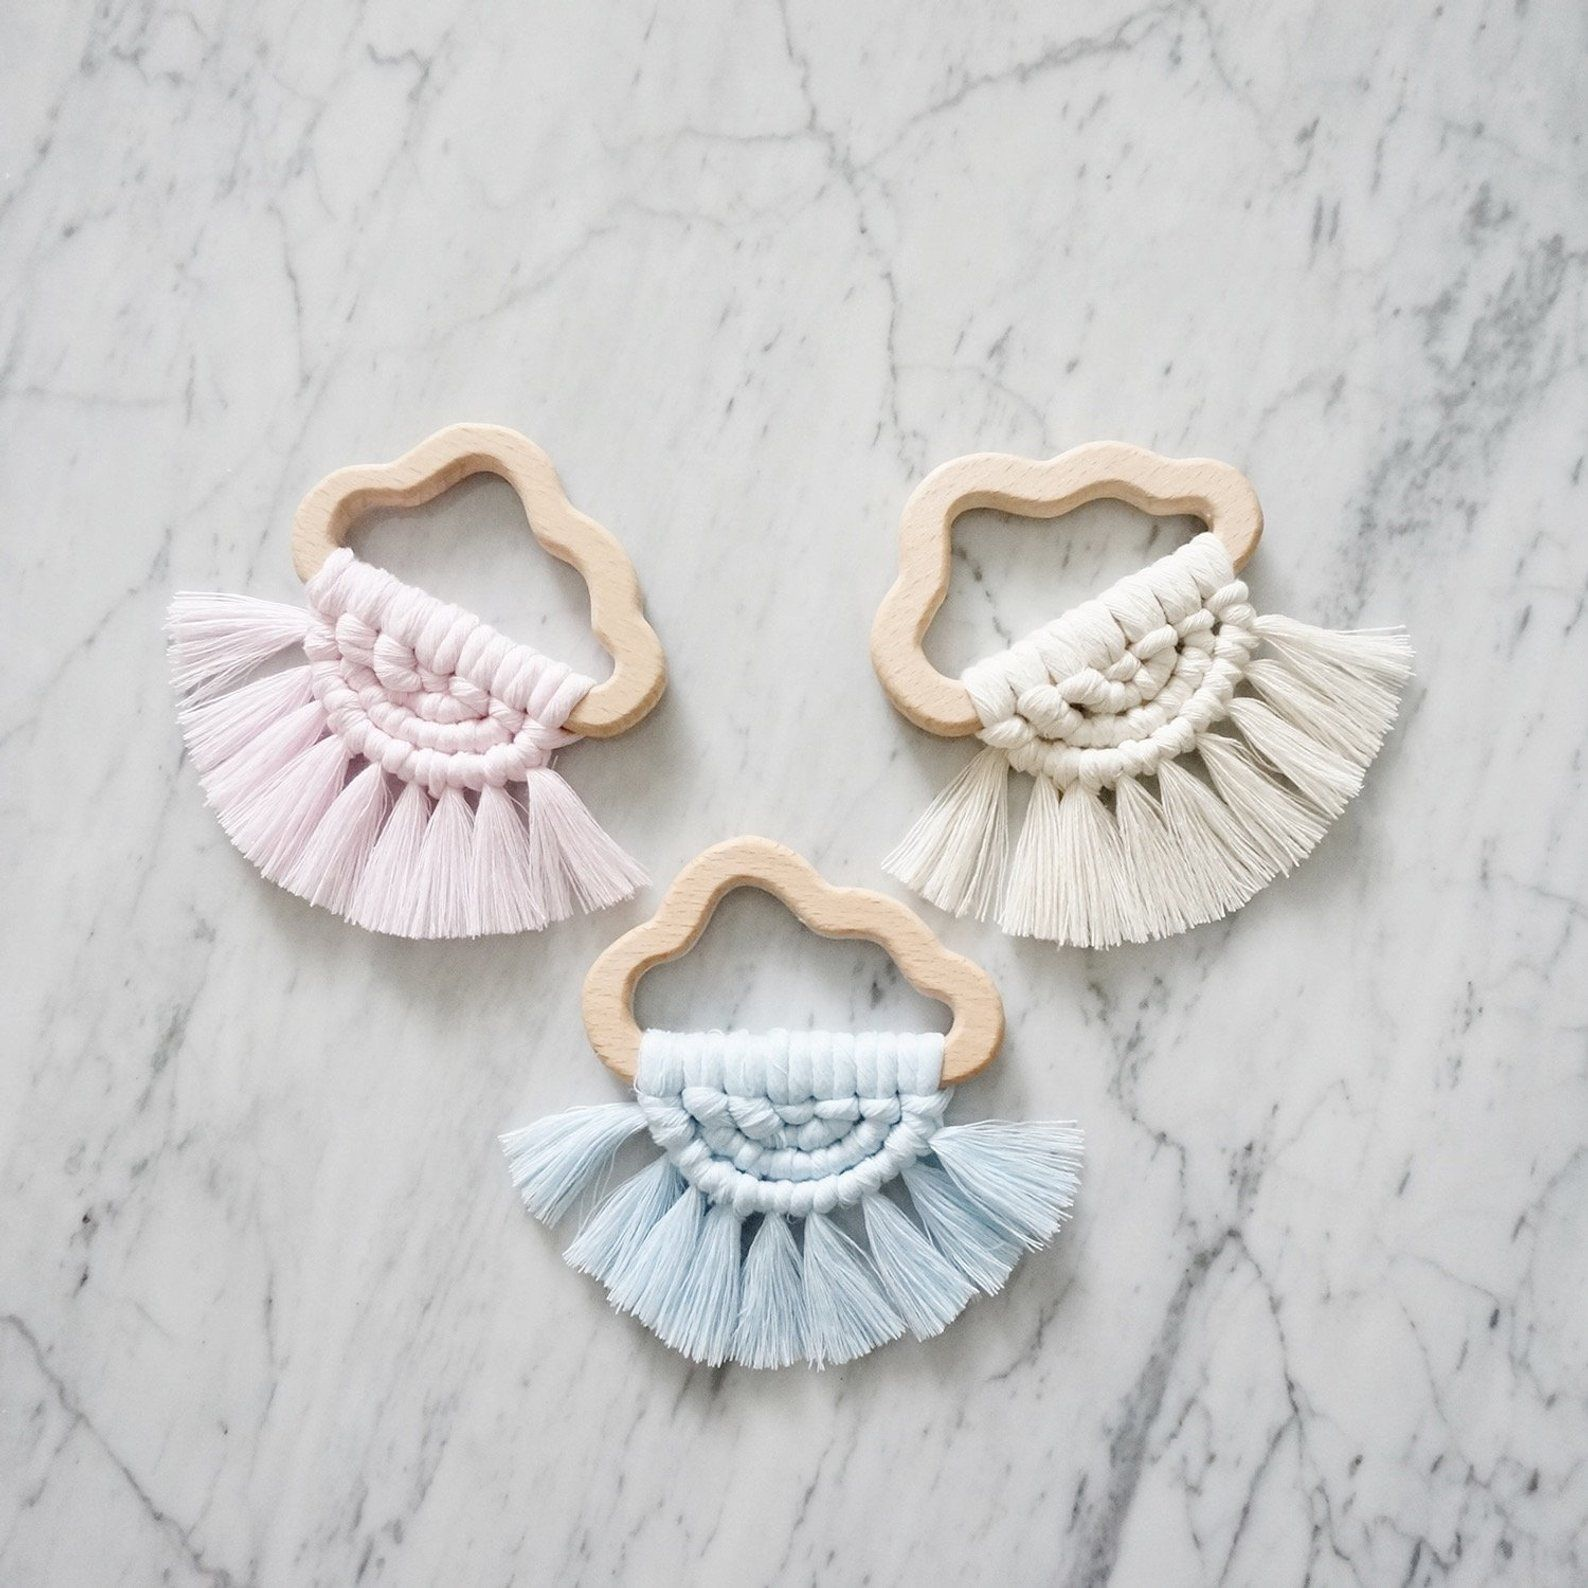 Macramé Wooden Teether | Macrame Baby Teether | Wooden Cloud Teether | Baby Toy | Baby Shower Gifts | Modern Macrame | Baby Teething Ring